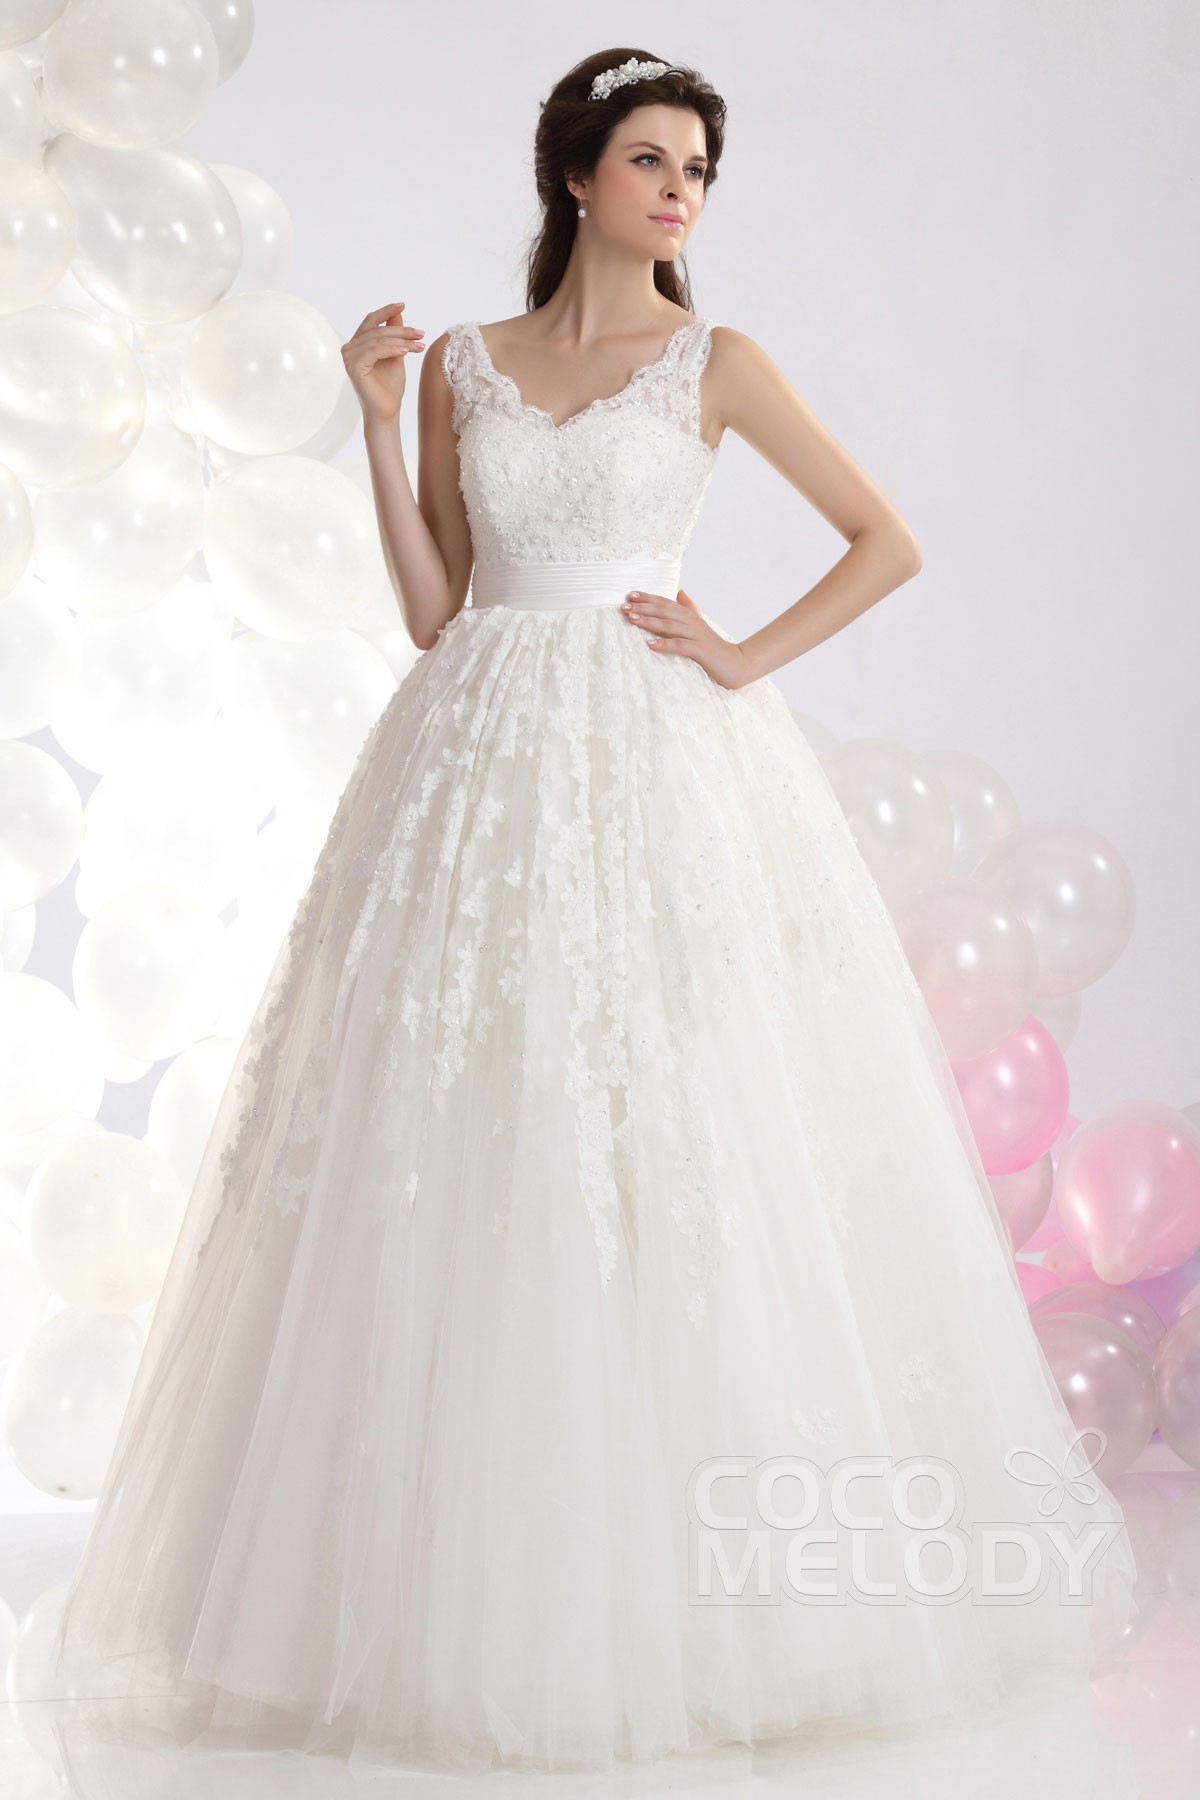 Cocomelody: Princess V-Neck Natural Floor Length Tulle Wedding Dress ...